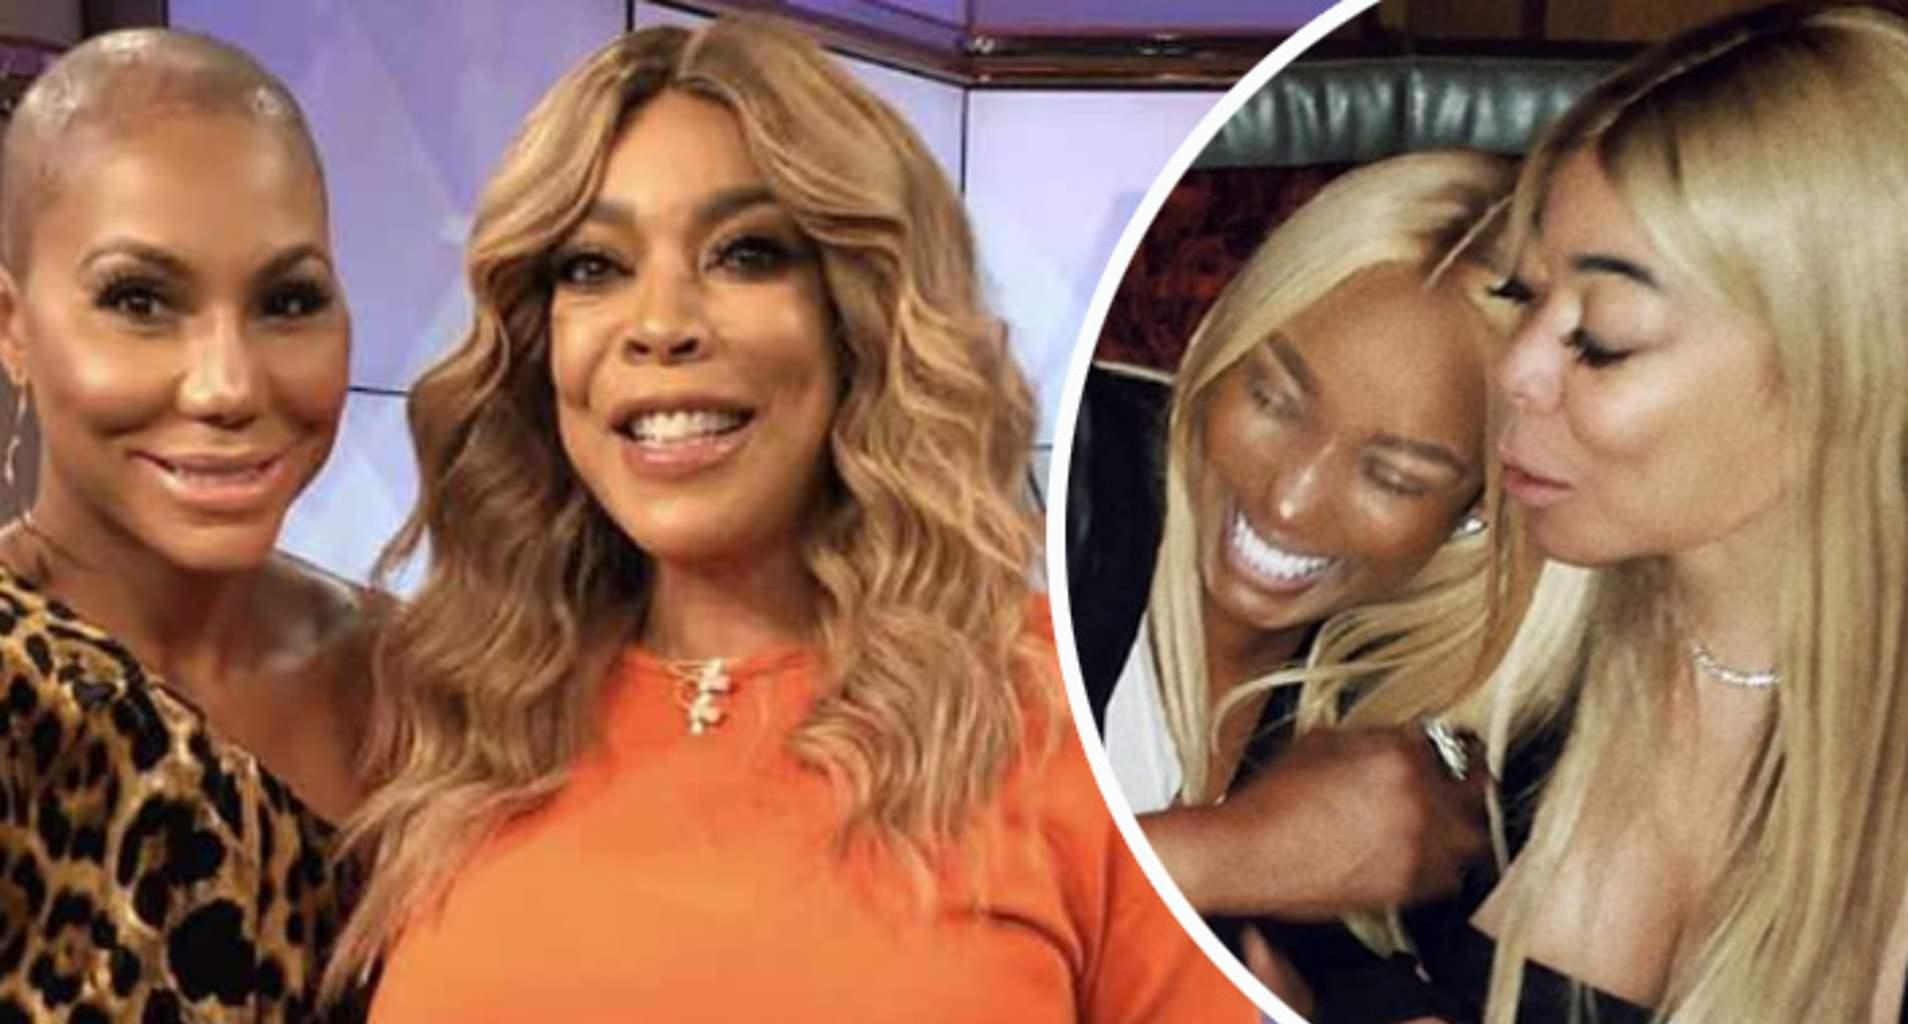 NeNe Leakes Spends Her Girls' Weekend With Wendy Williams And Tamar Braxton: 'The Queens Of Shade All Together'